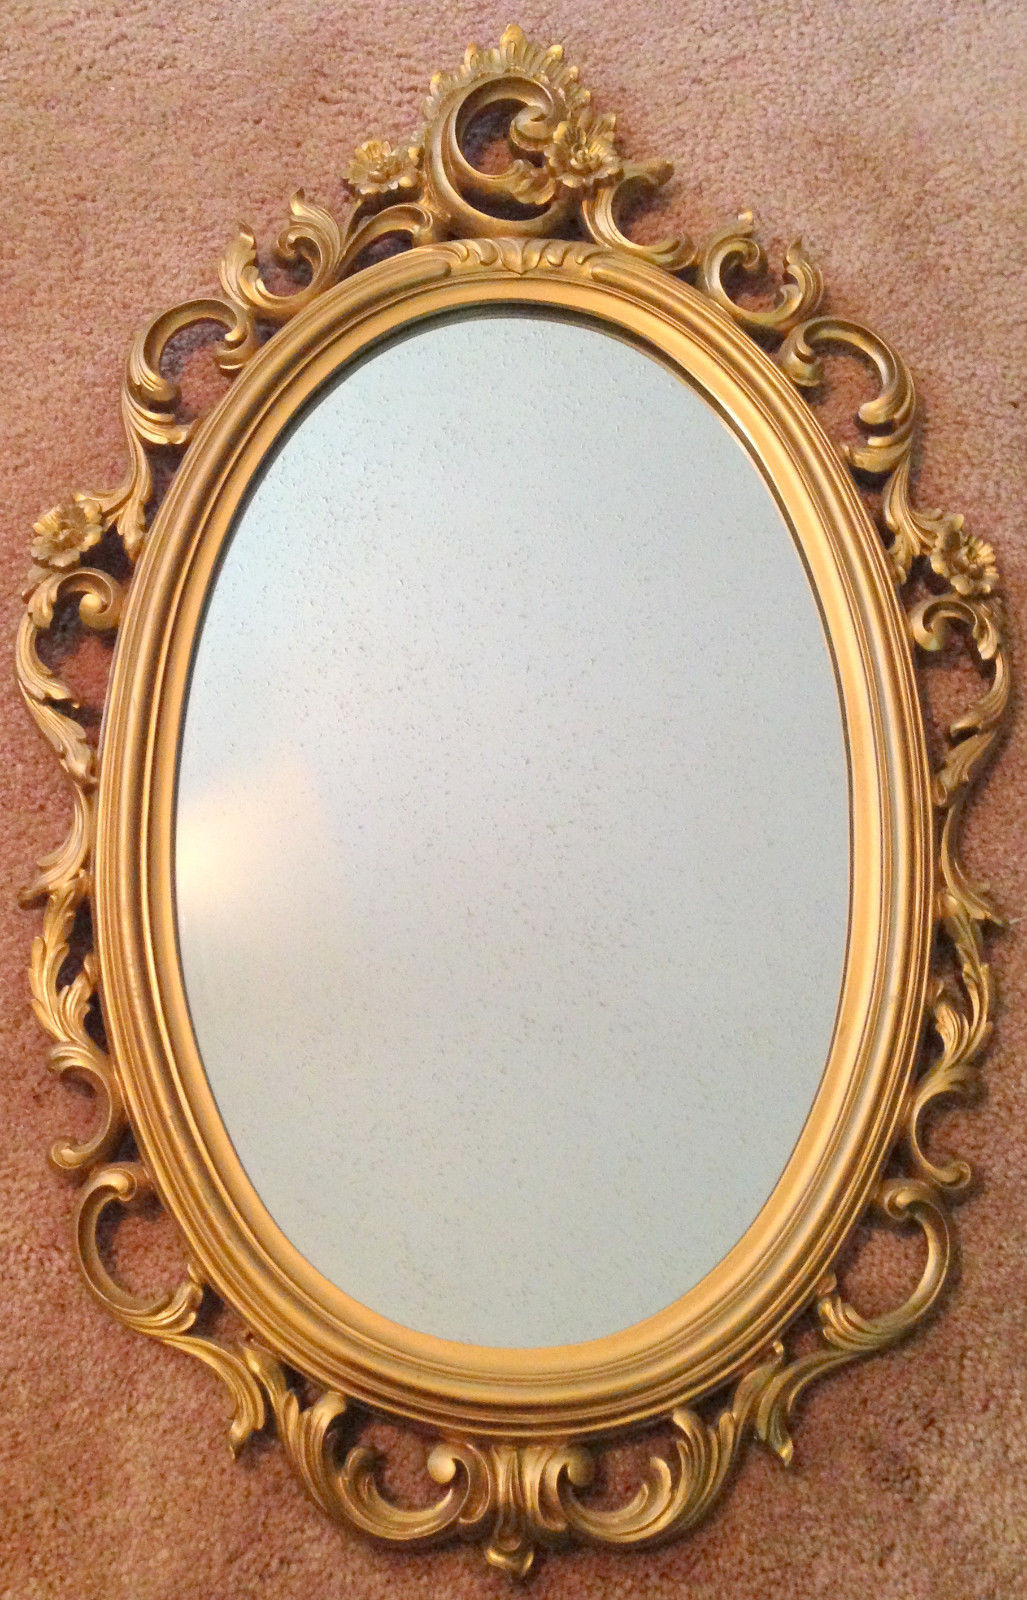 Triple oval mirror gold frame images for Mirror mirror hd